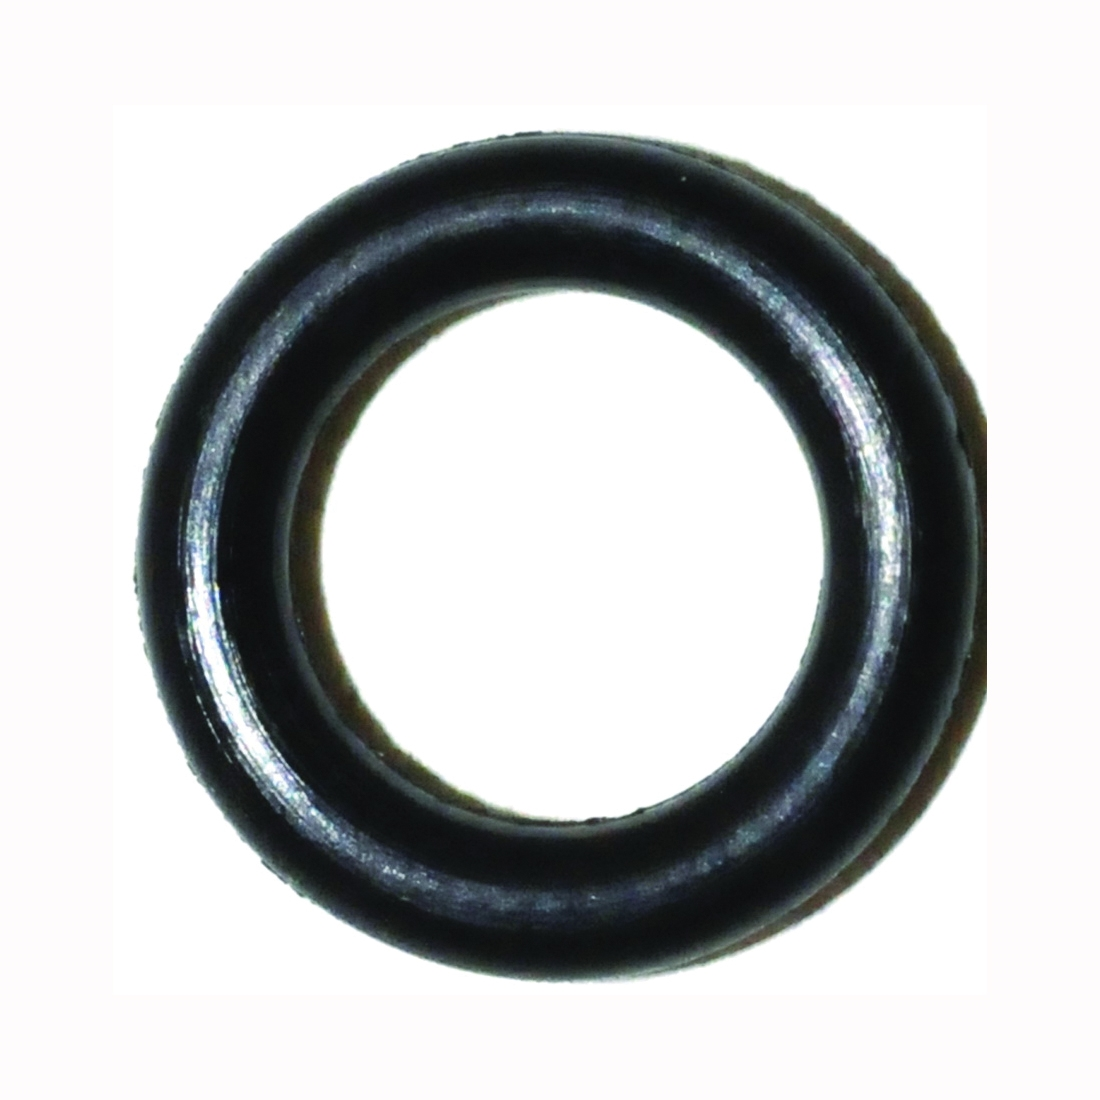 Picture of Danco 35722B Faucet O-Ring, #5, 1/4 in ID x 3/8 in OD Dia, 1/16 in Thick, Buna-N